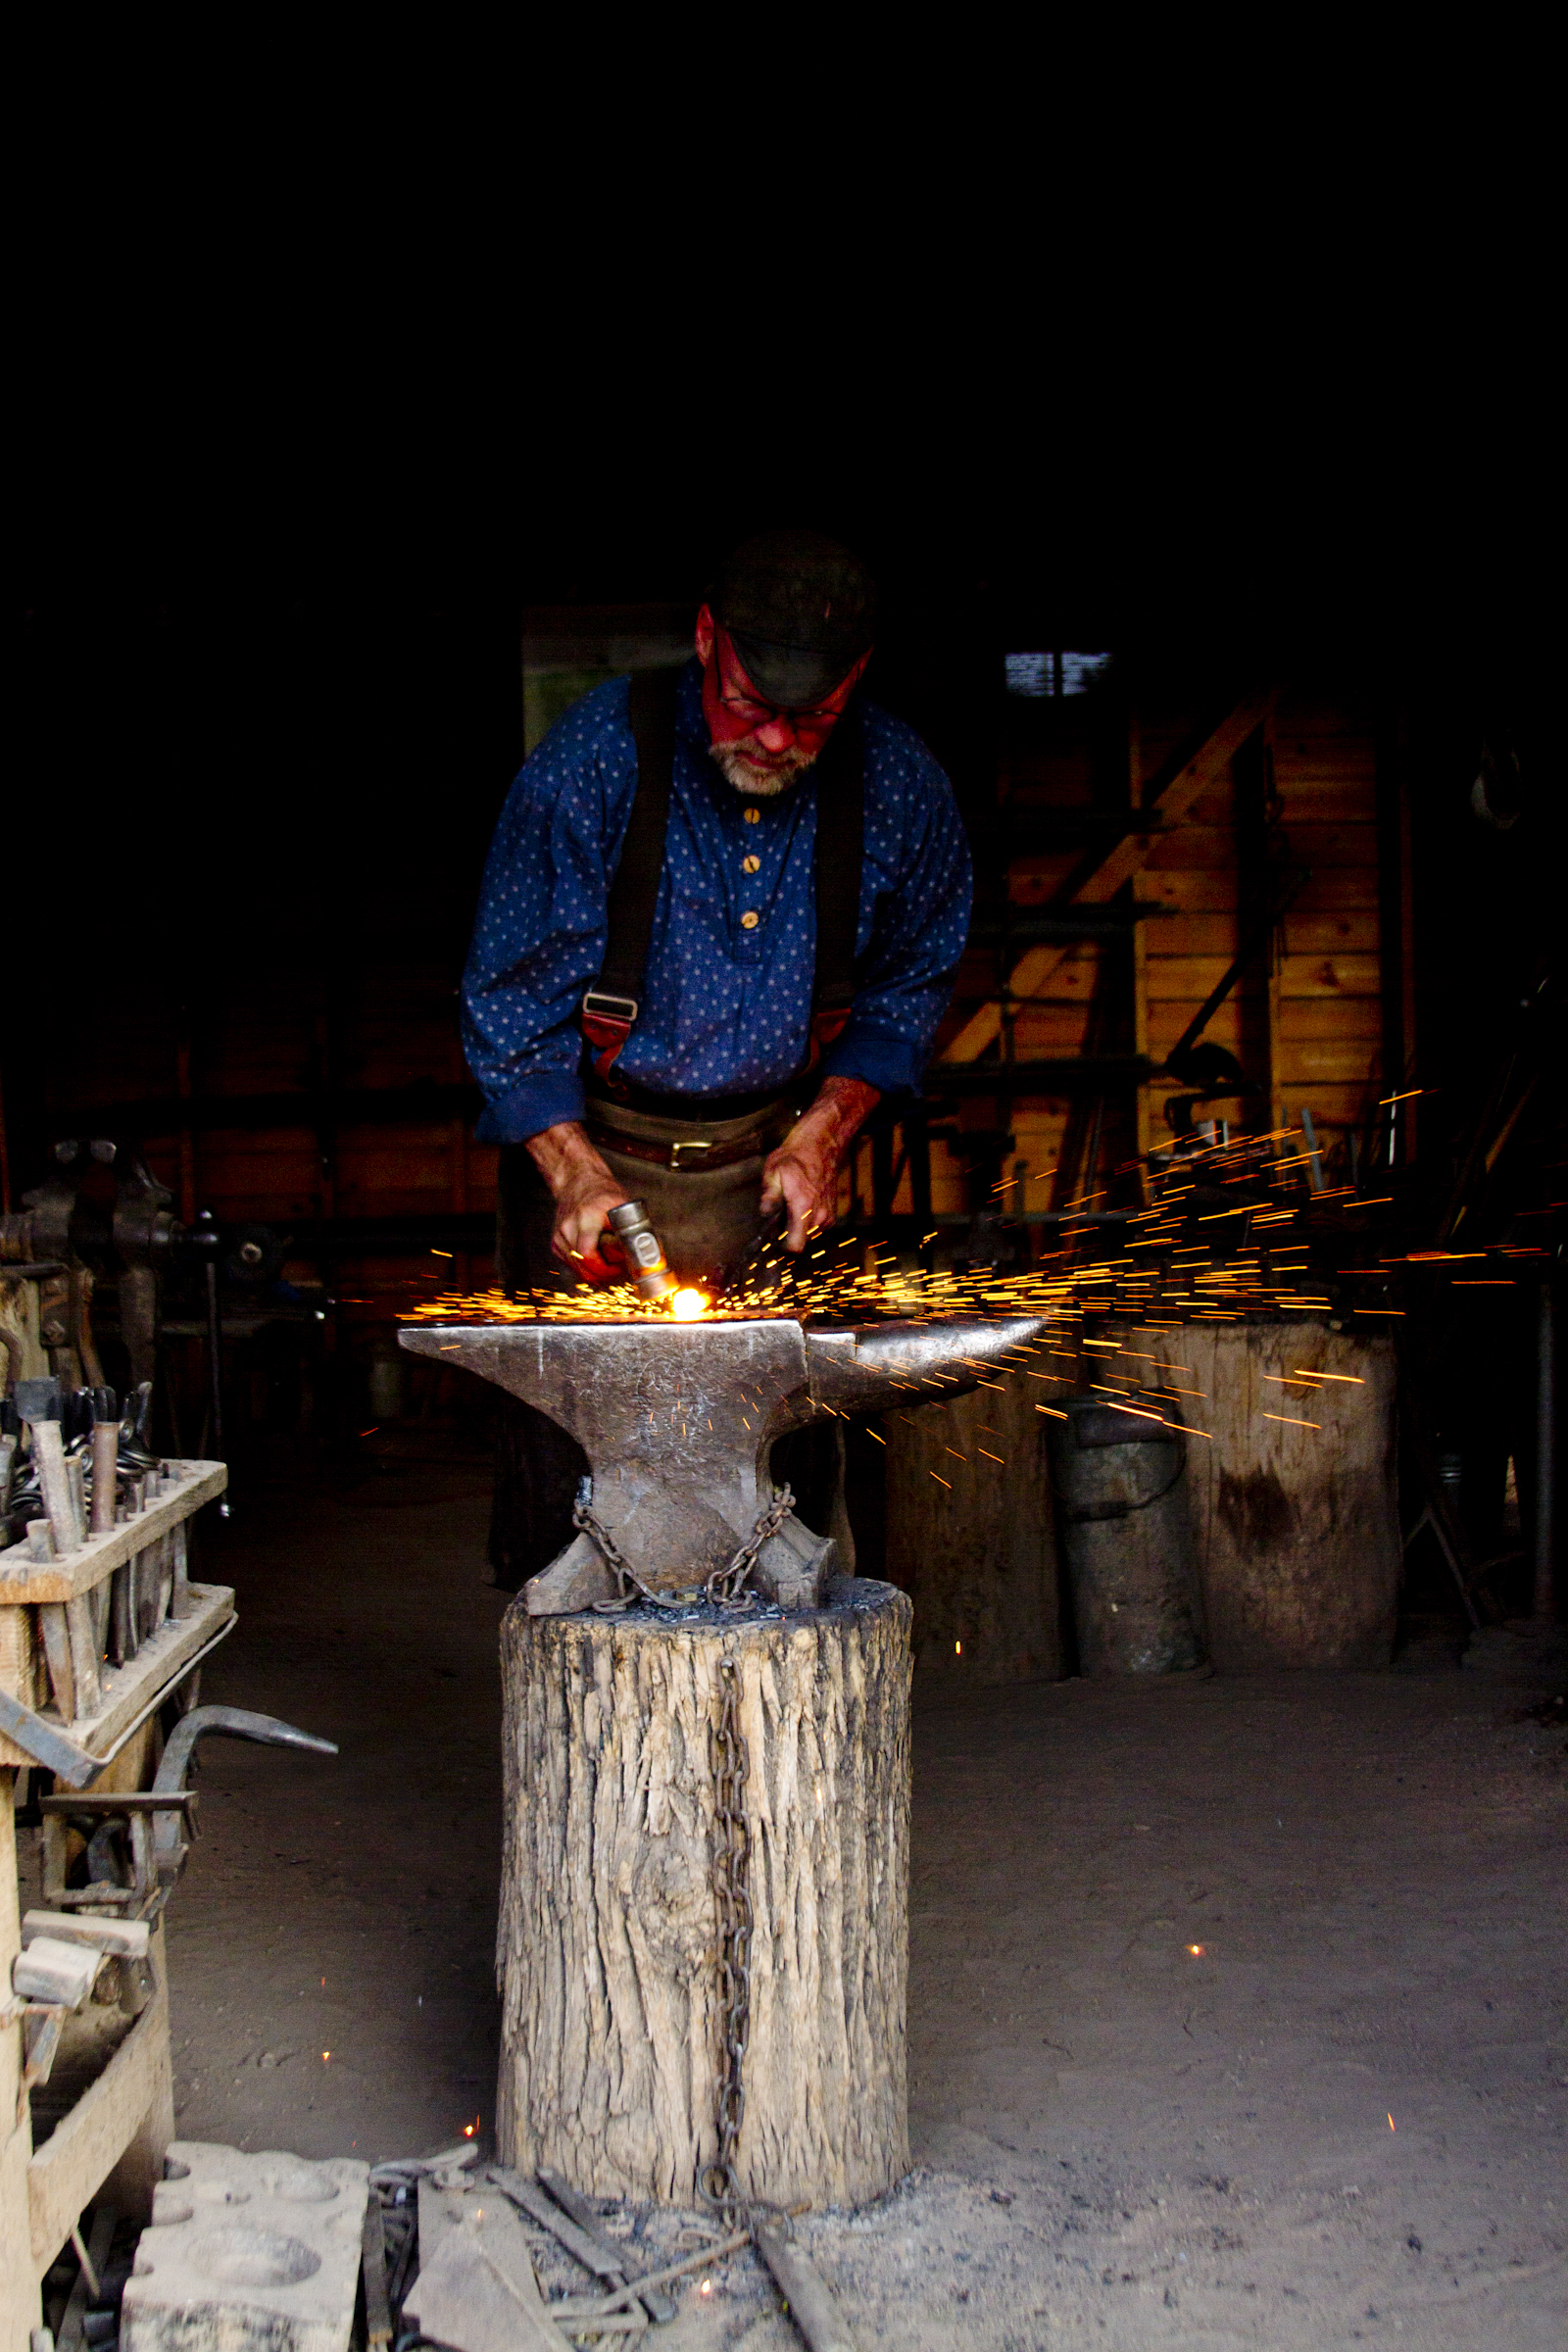 Blacksmith working iron in his shop